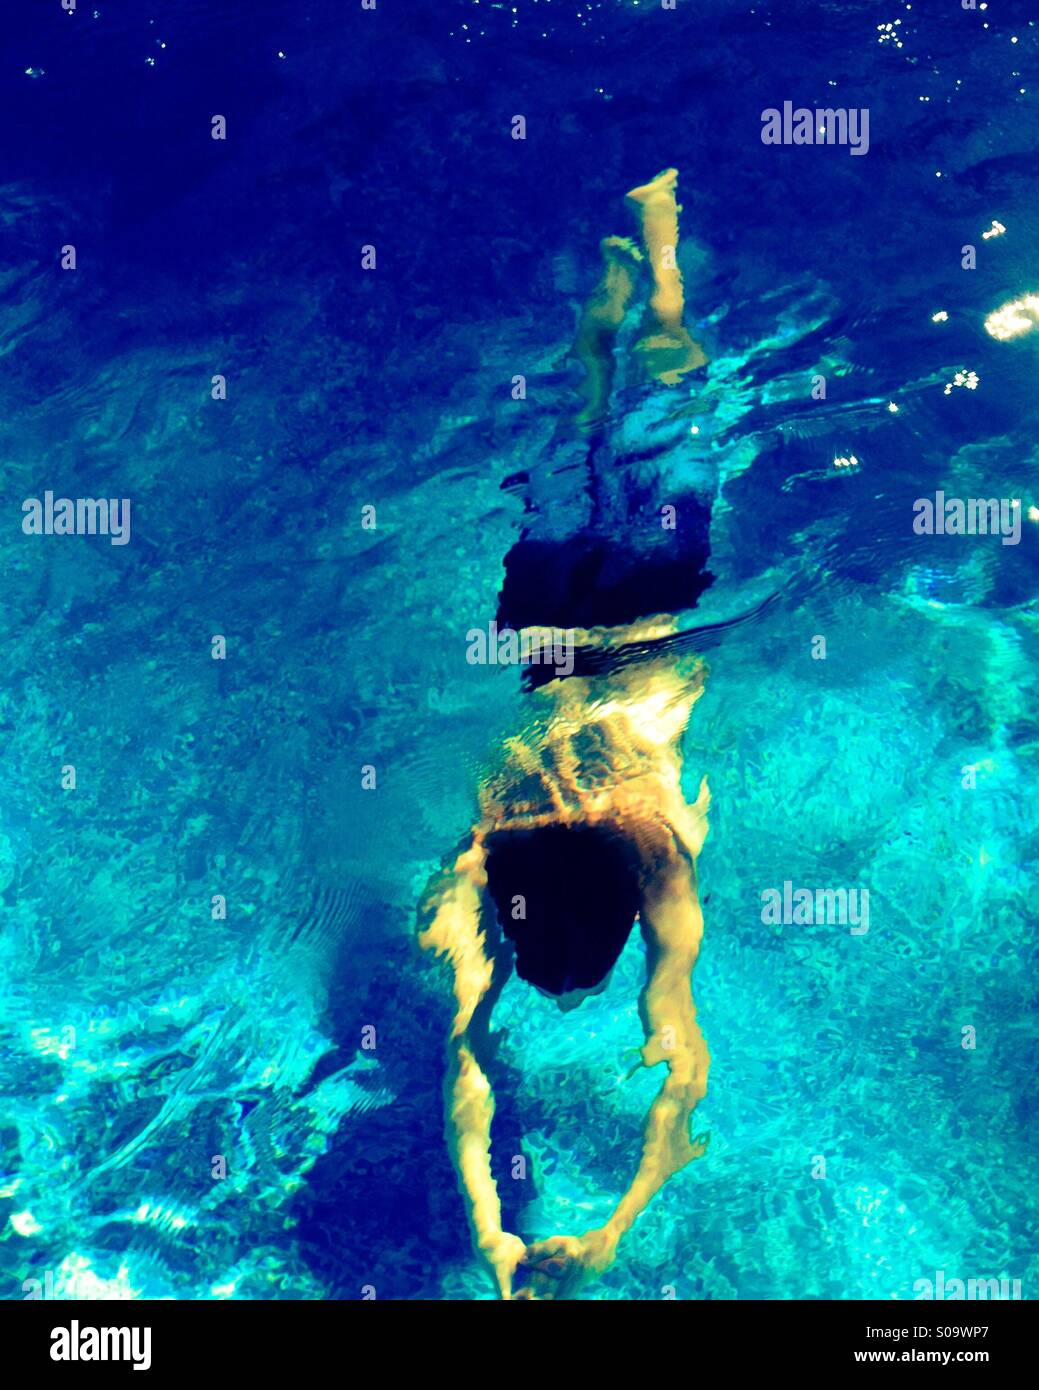 Young man swimming underwater in swimming pool as the sun glistens through the water. - Stock Image